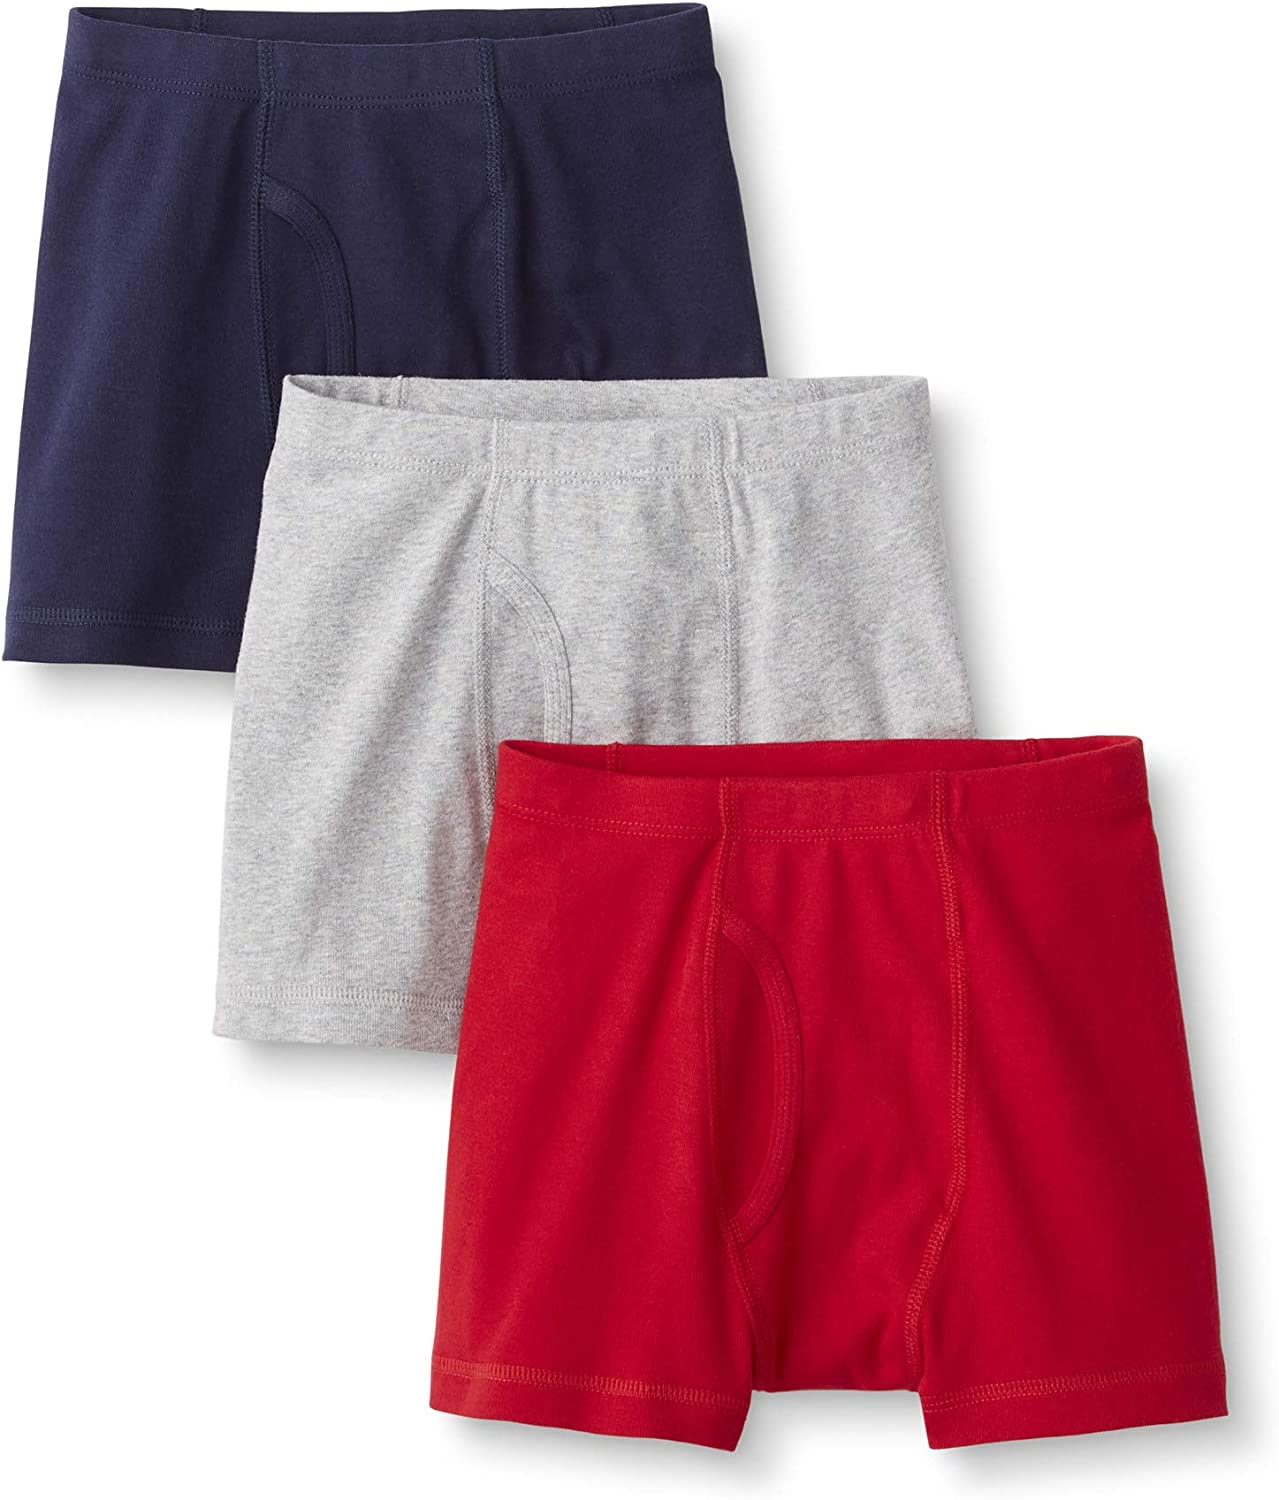 3-Pack Hanna Andersson Boys Boxer Briefs in Organic Cotton